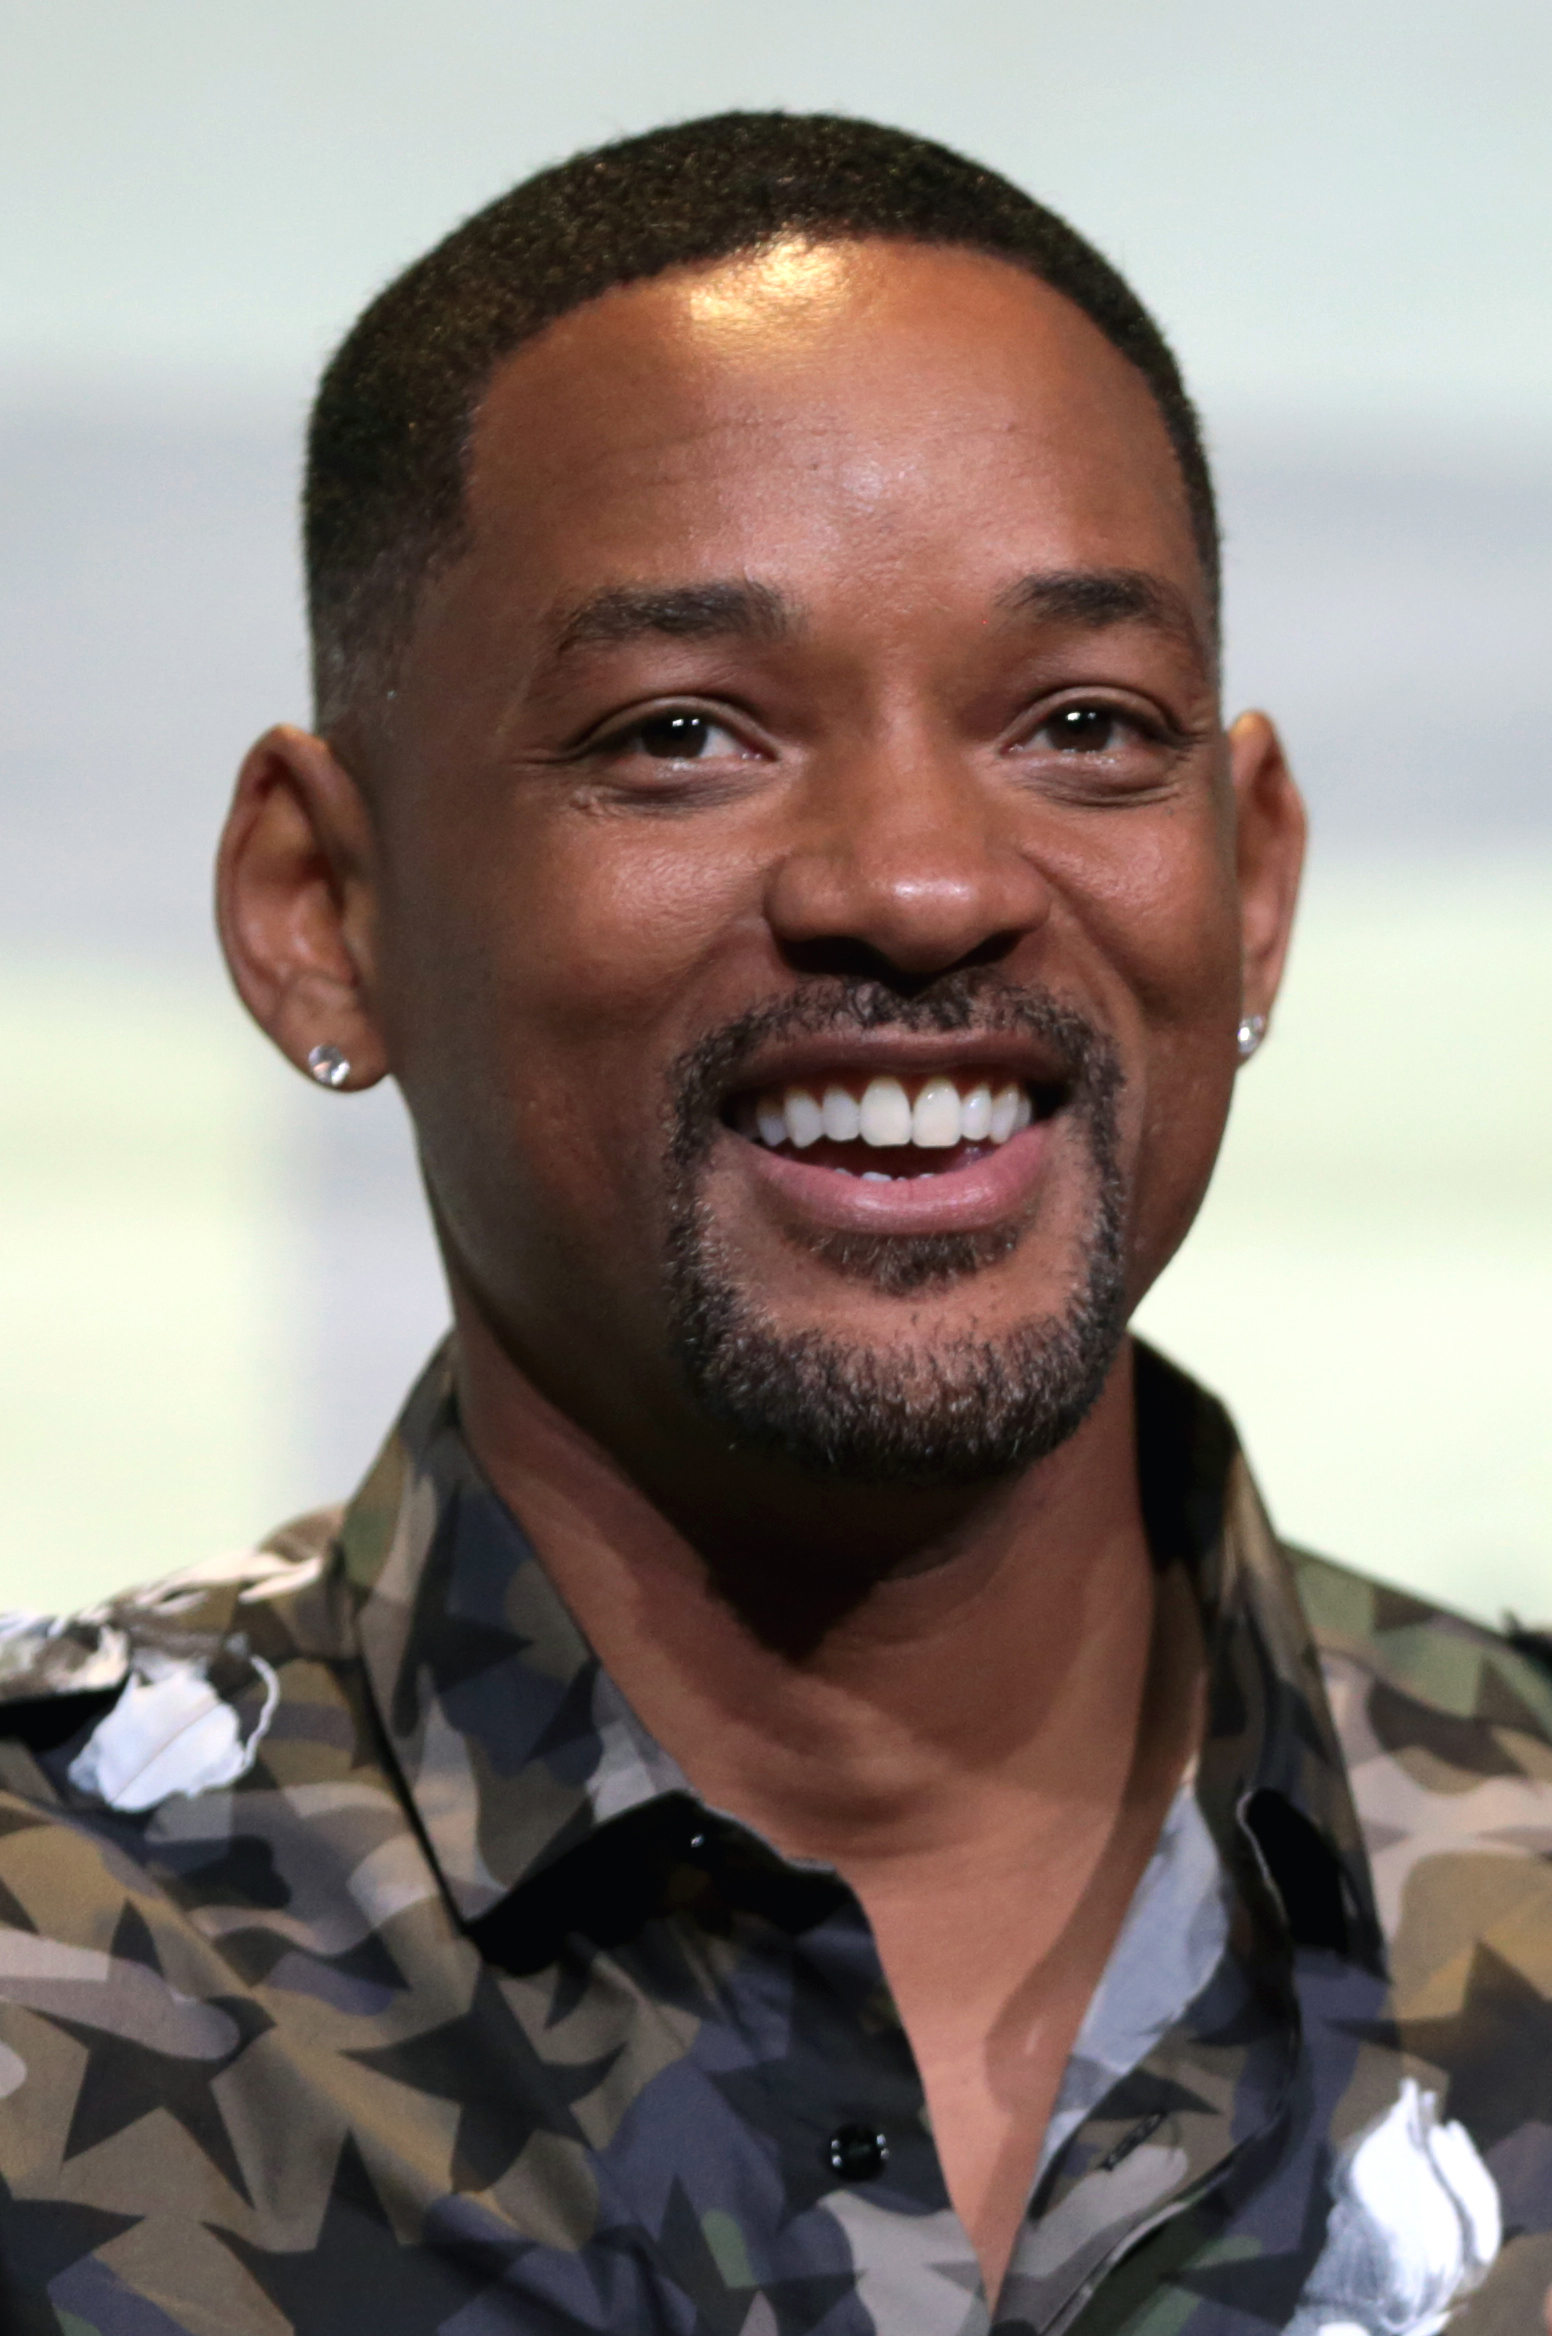 will smith wikipedia